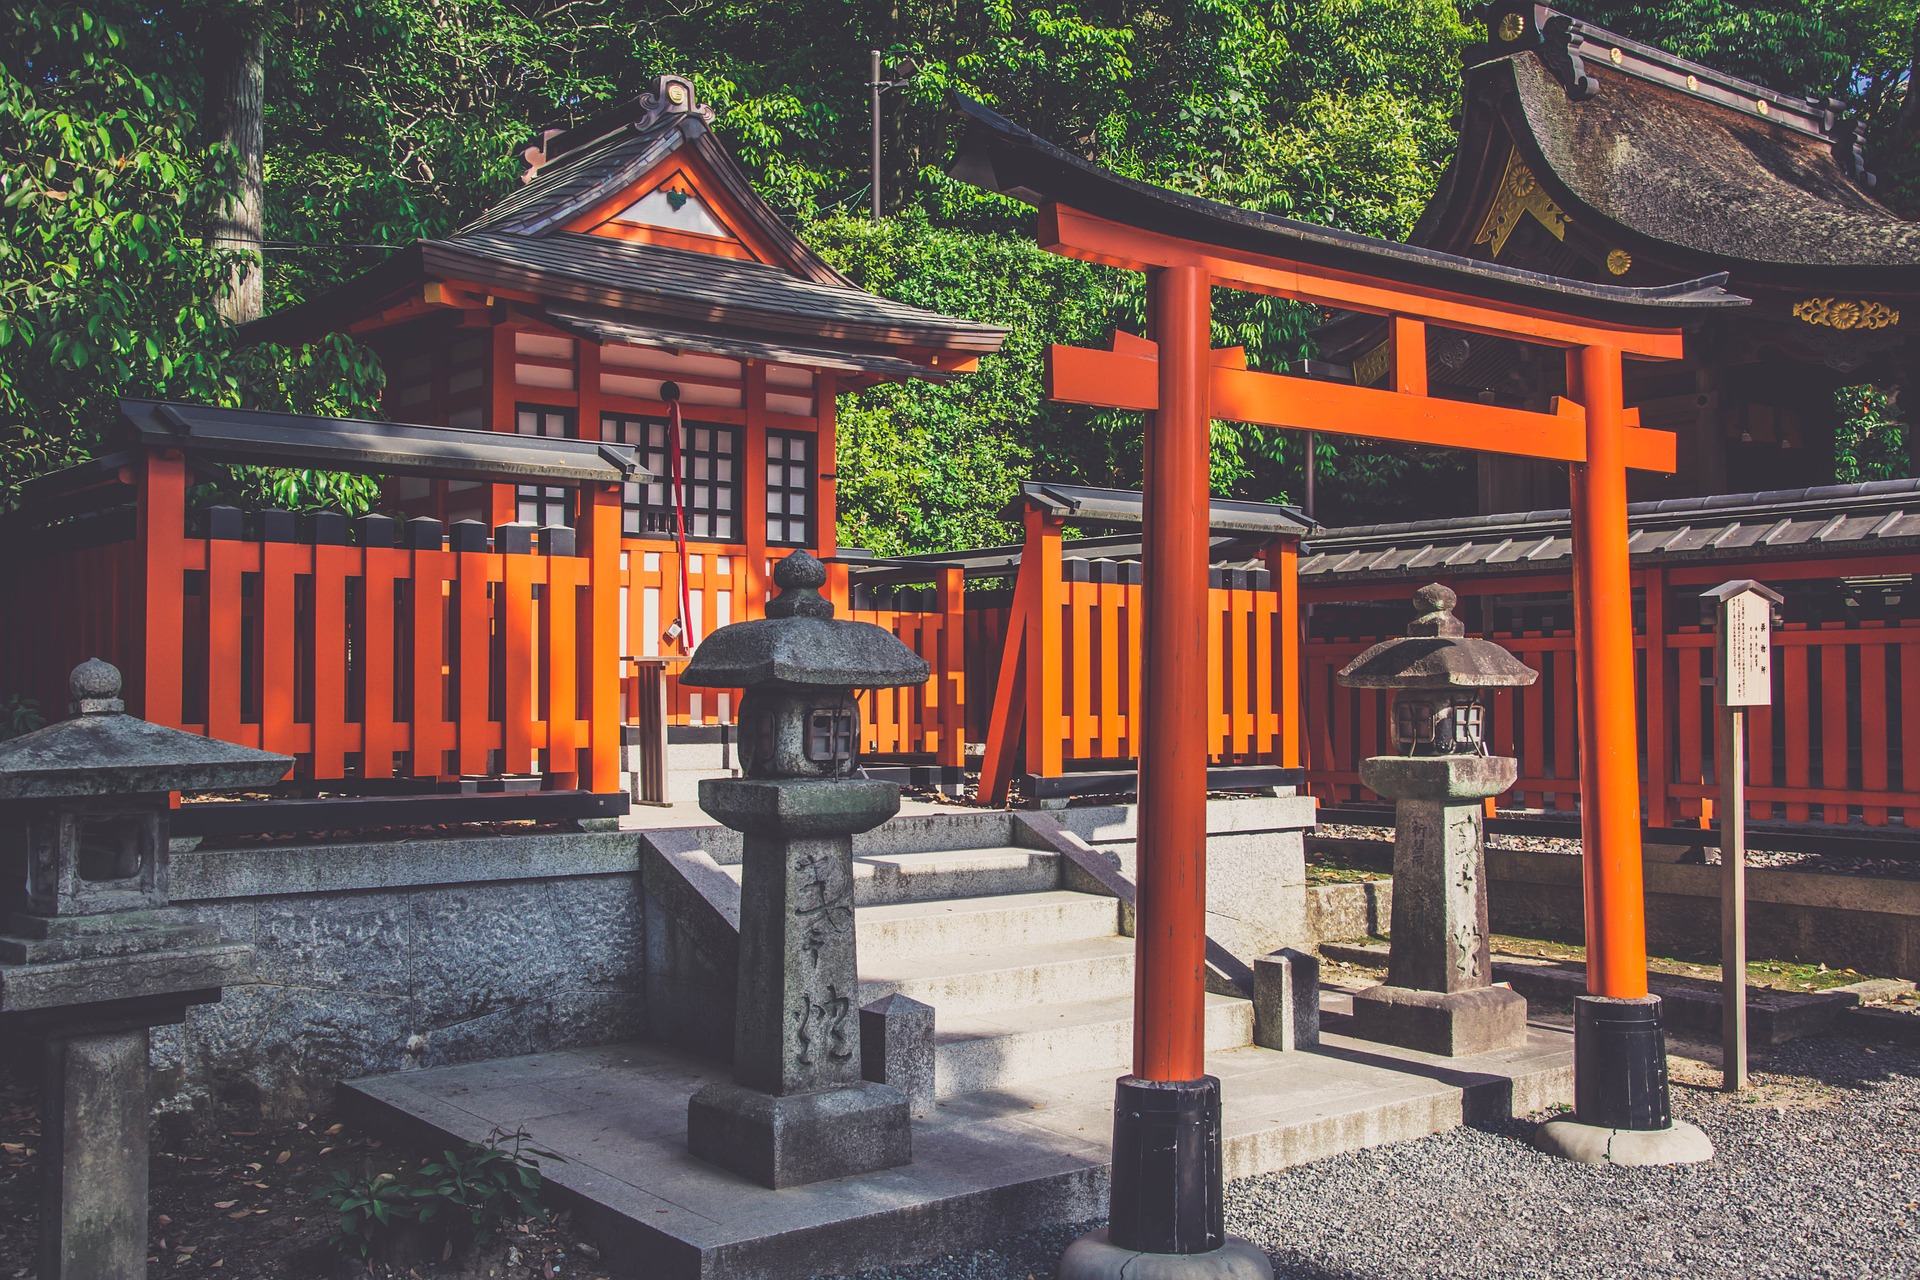 Shinto is the only animistic major world religion currently, but most indigenous religions are animistic, and it is believed that most ancient religions were as well.